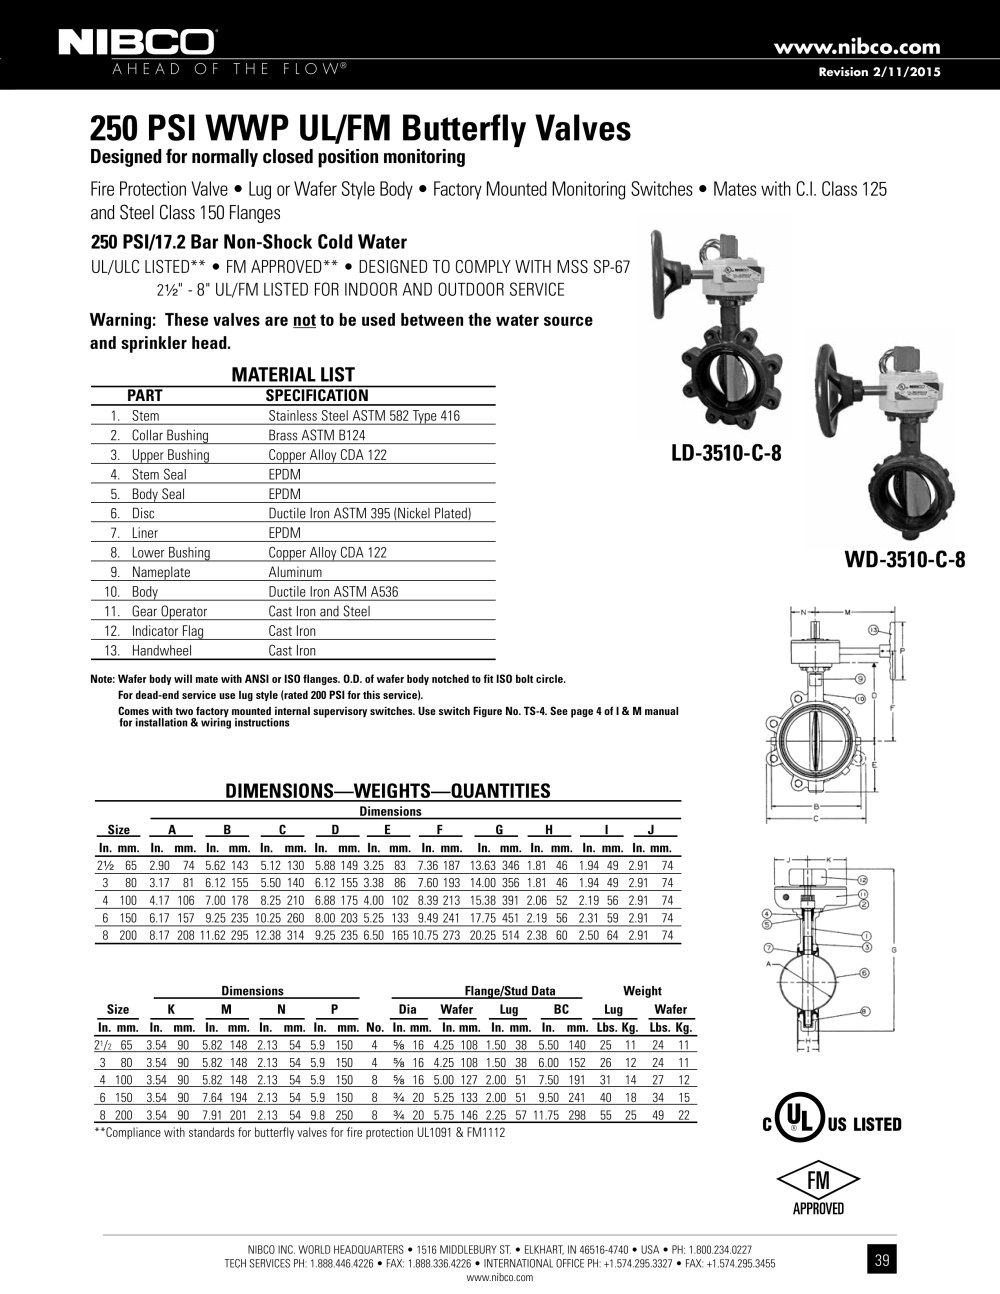 catalogue   fire protection valve catalog   nibco    version jpg    page 39